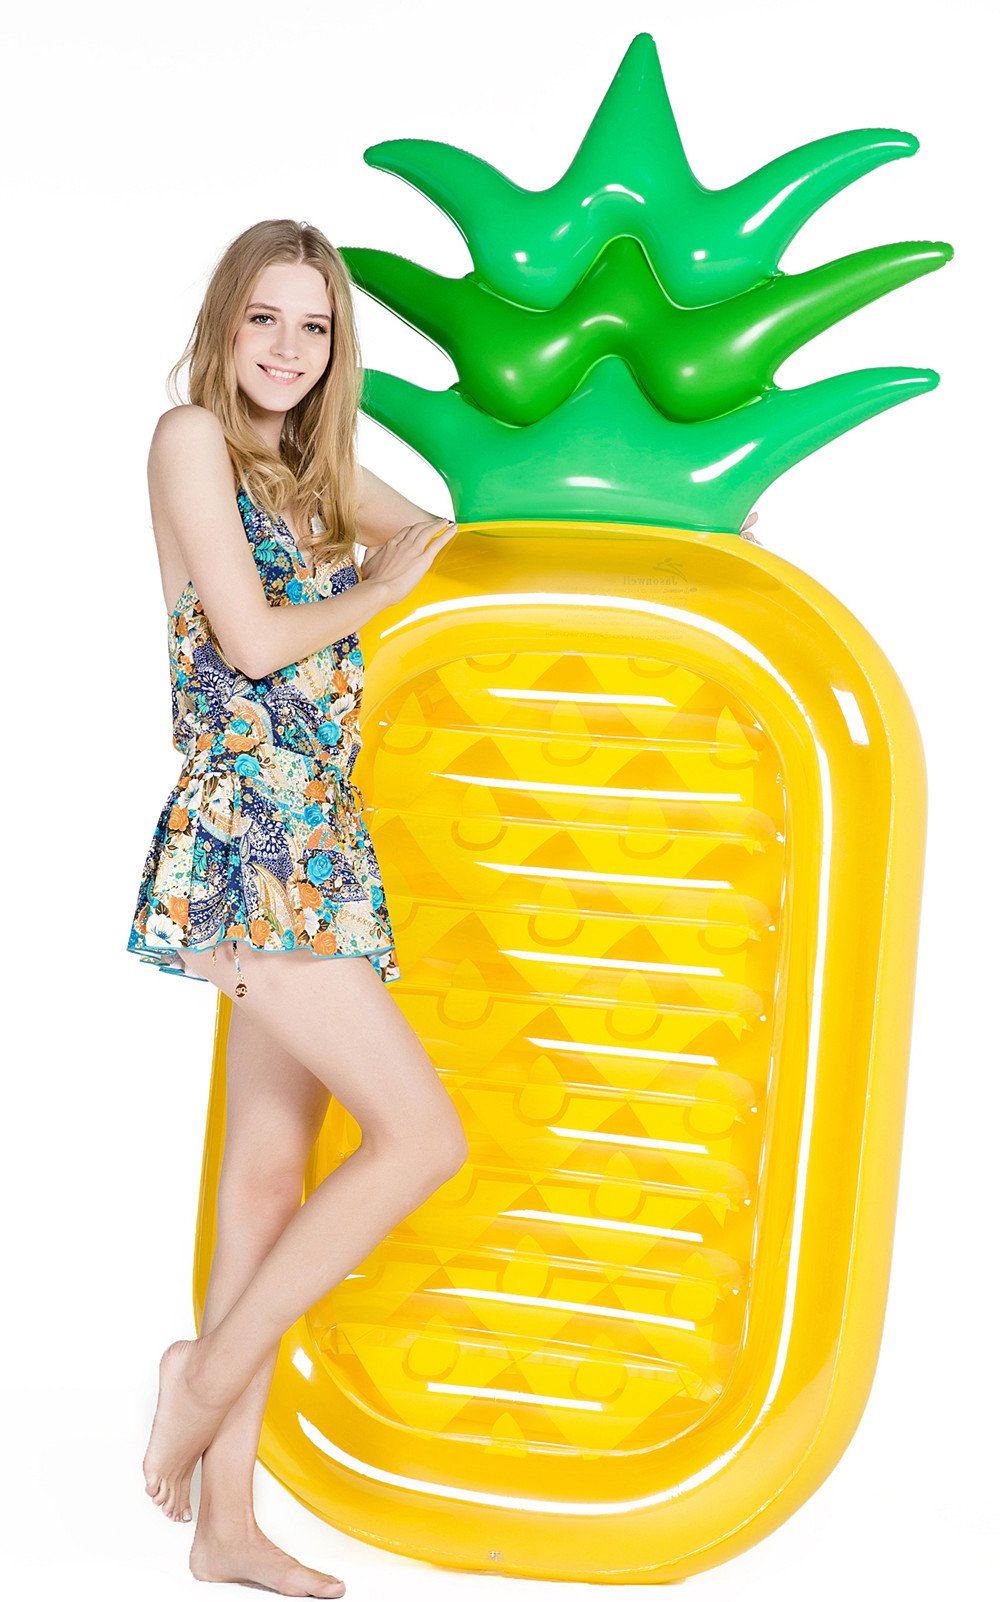 Jasonwell Giant 76'' Pineapple Pool Party Float Raft Summer Beach Swimming Pool Inflatable Floatie Lounge Pool Loungers Decorations Toys Adults & Kids